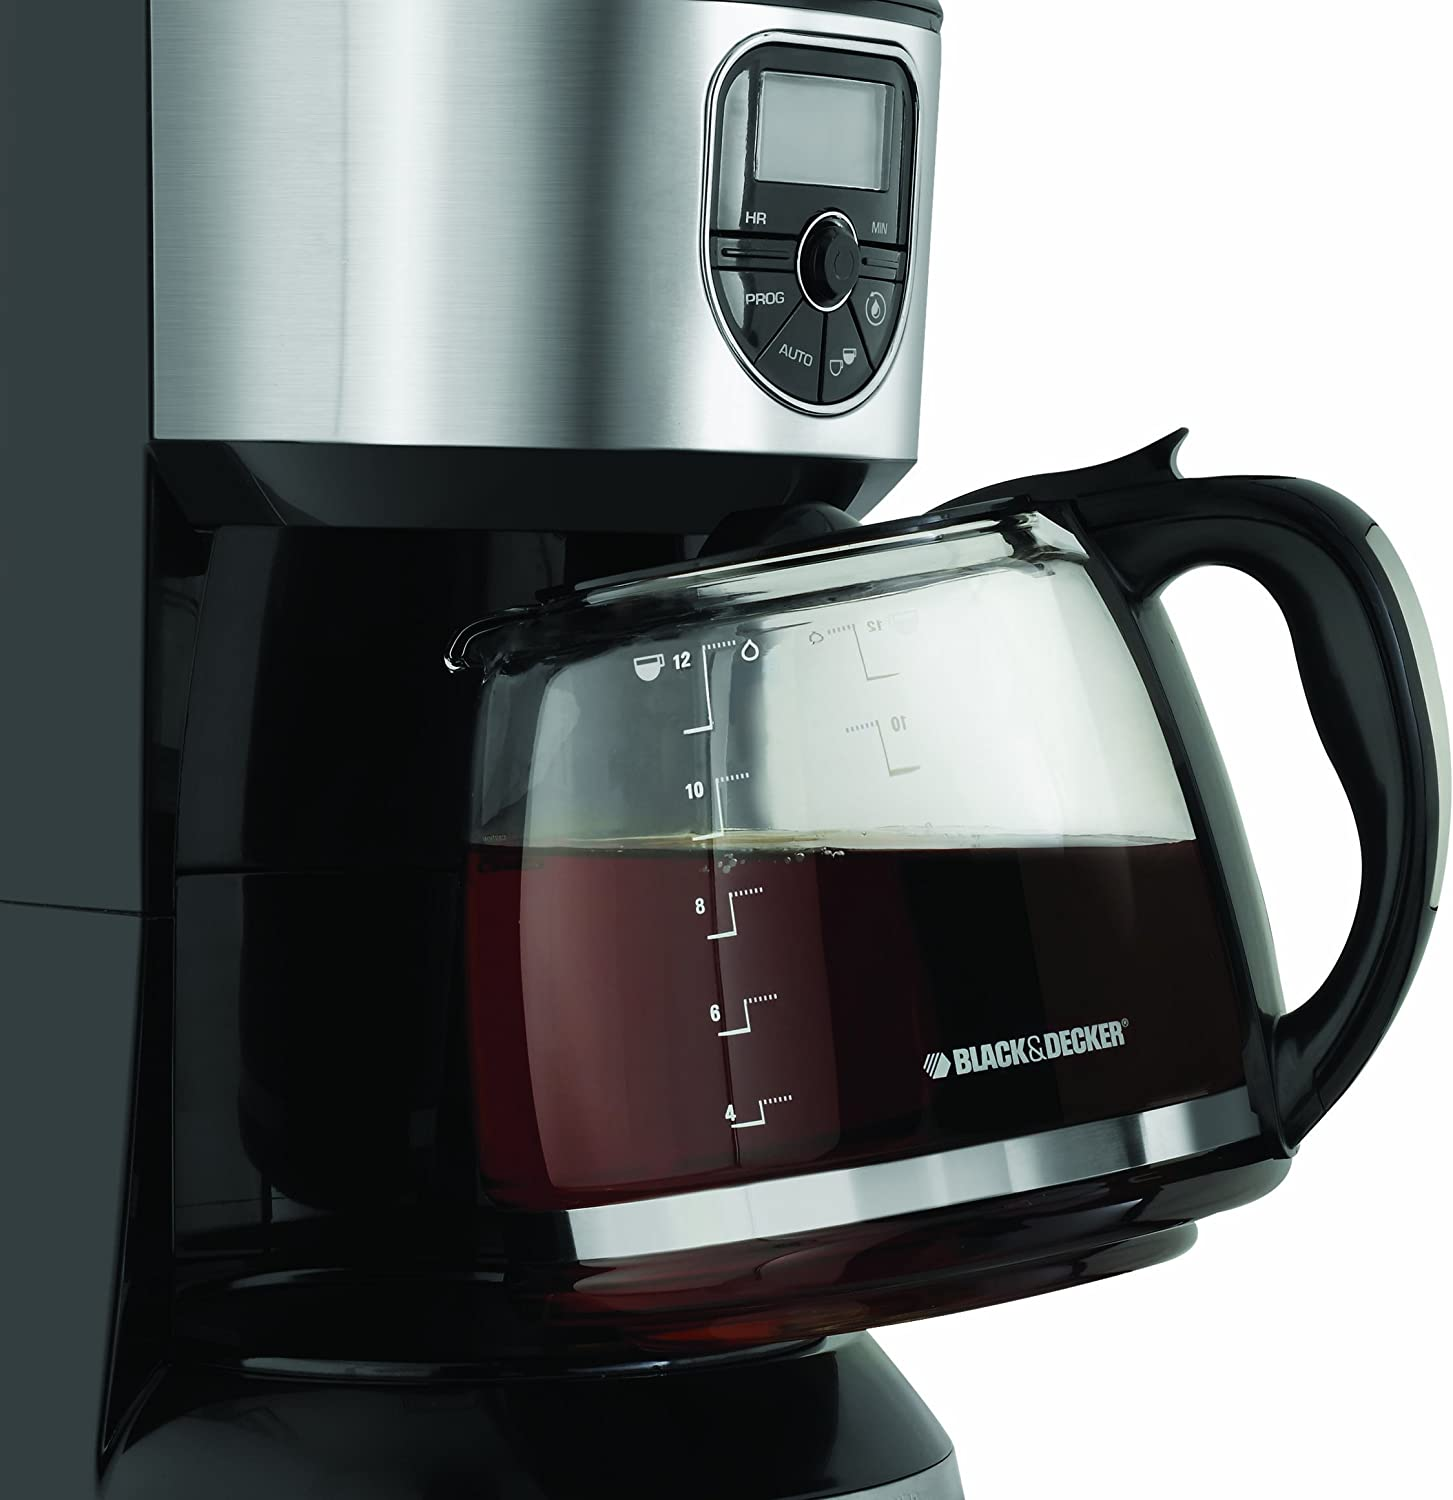 Amazon.com: Black & Decker cm4000s 12-cup Cafetera ...